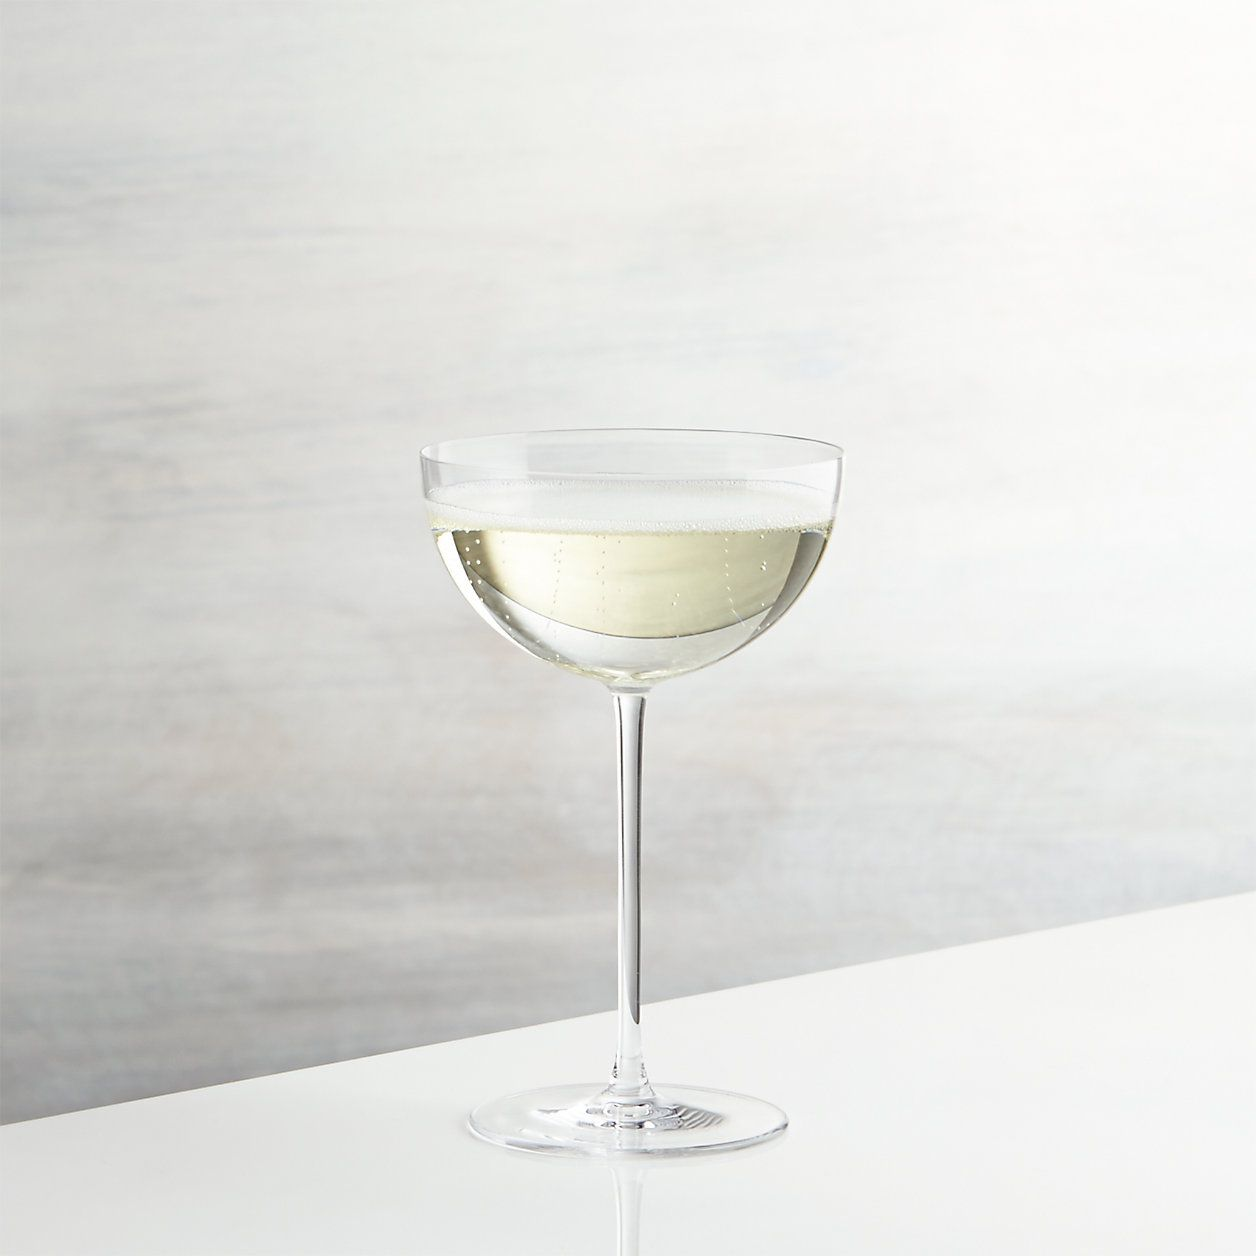 Crate & Barrel Camille Long Stem Champagne Coupe Glass